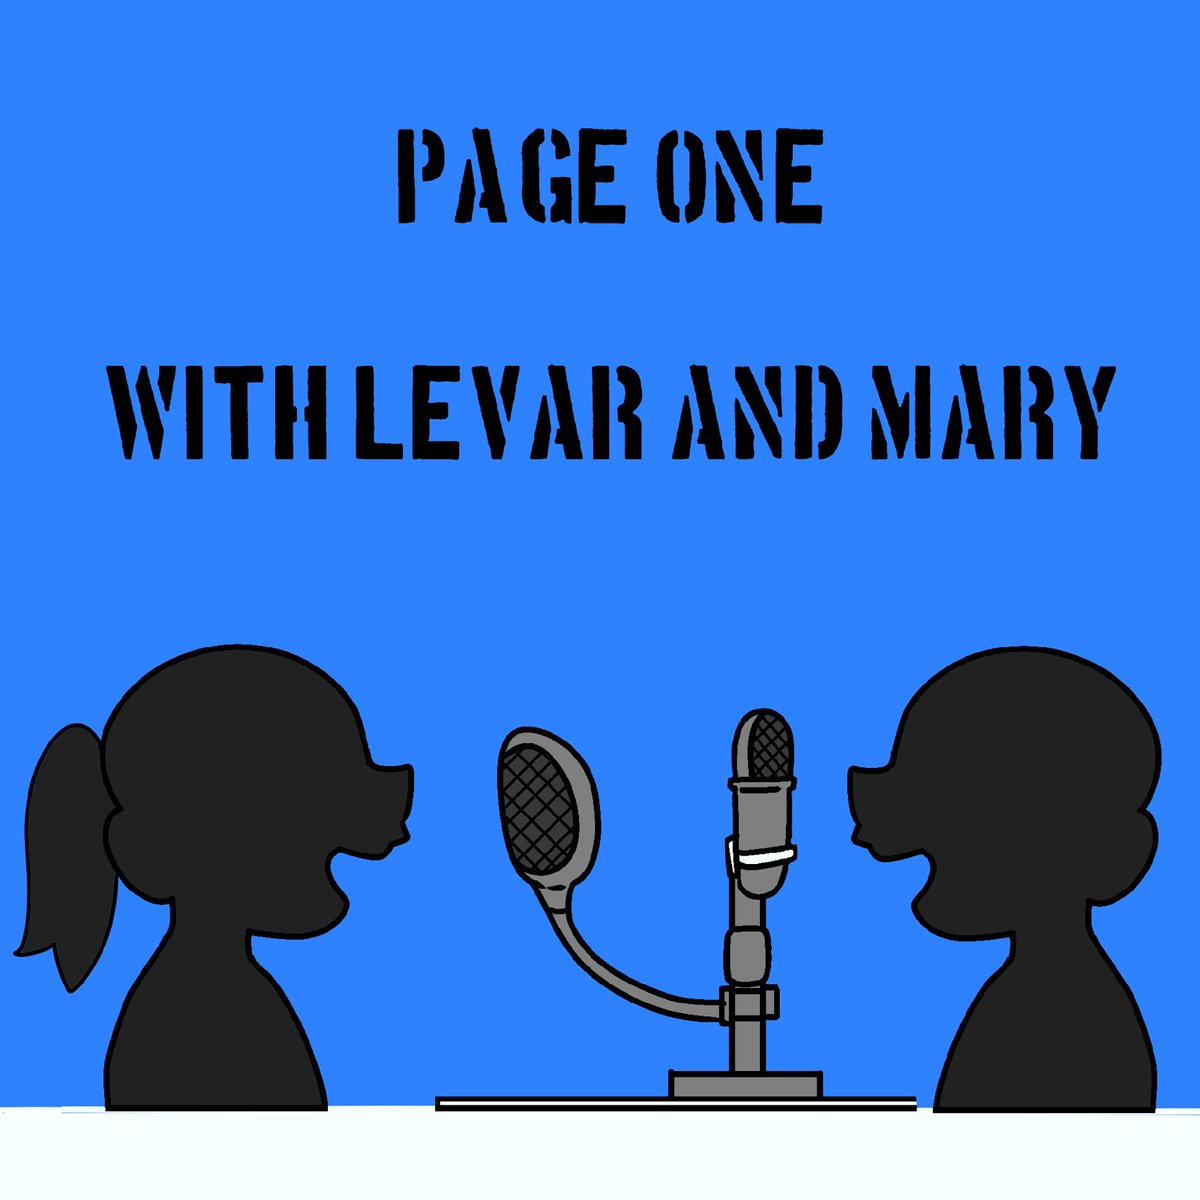 TGIF! @luaysmama & I will be with you tonight at 10p ET/9p CT for an all new Page One on Blogtalkradio! Join us then!!! #Podcast #FridayFun #FridayThoughts  You can hear the show here>>